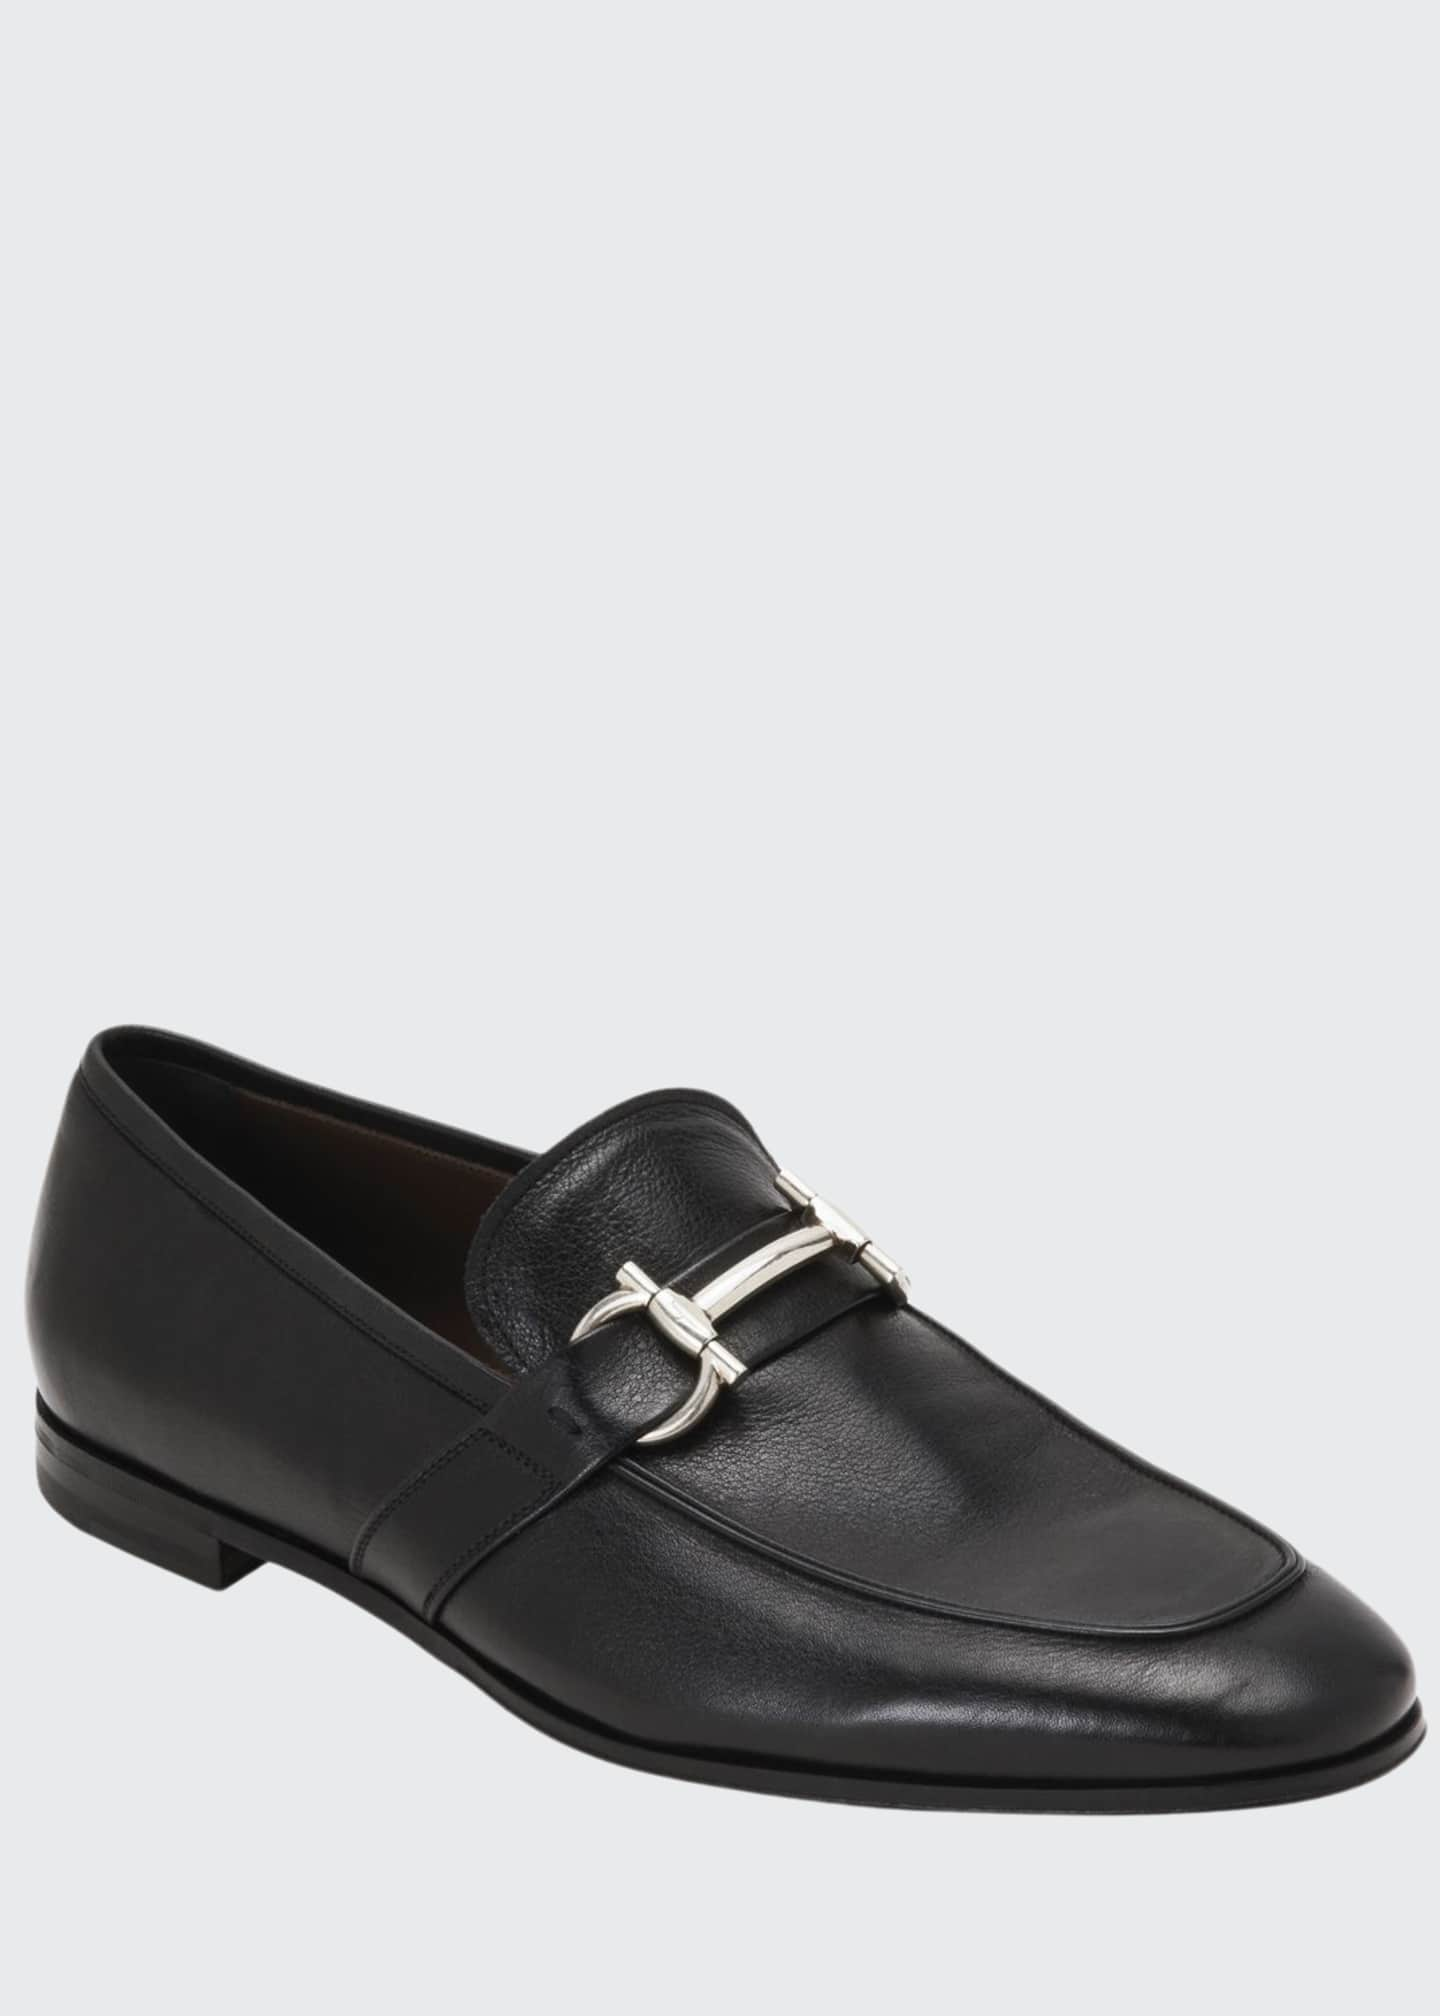 Image 1 of 4: Men's Arlin Leather Slip-On Bit Loafers